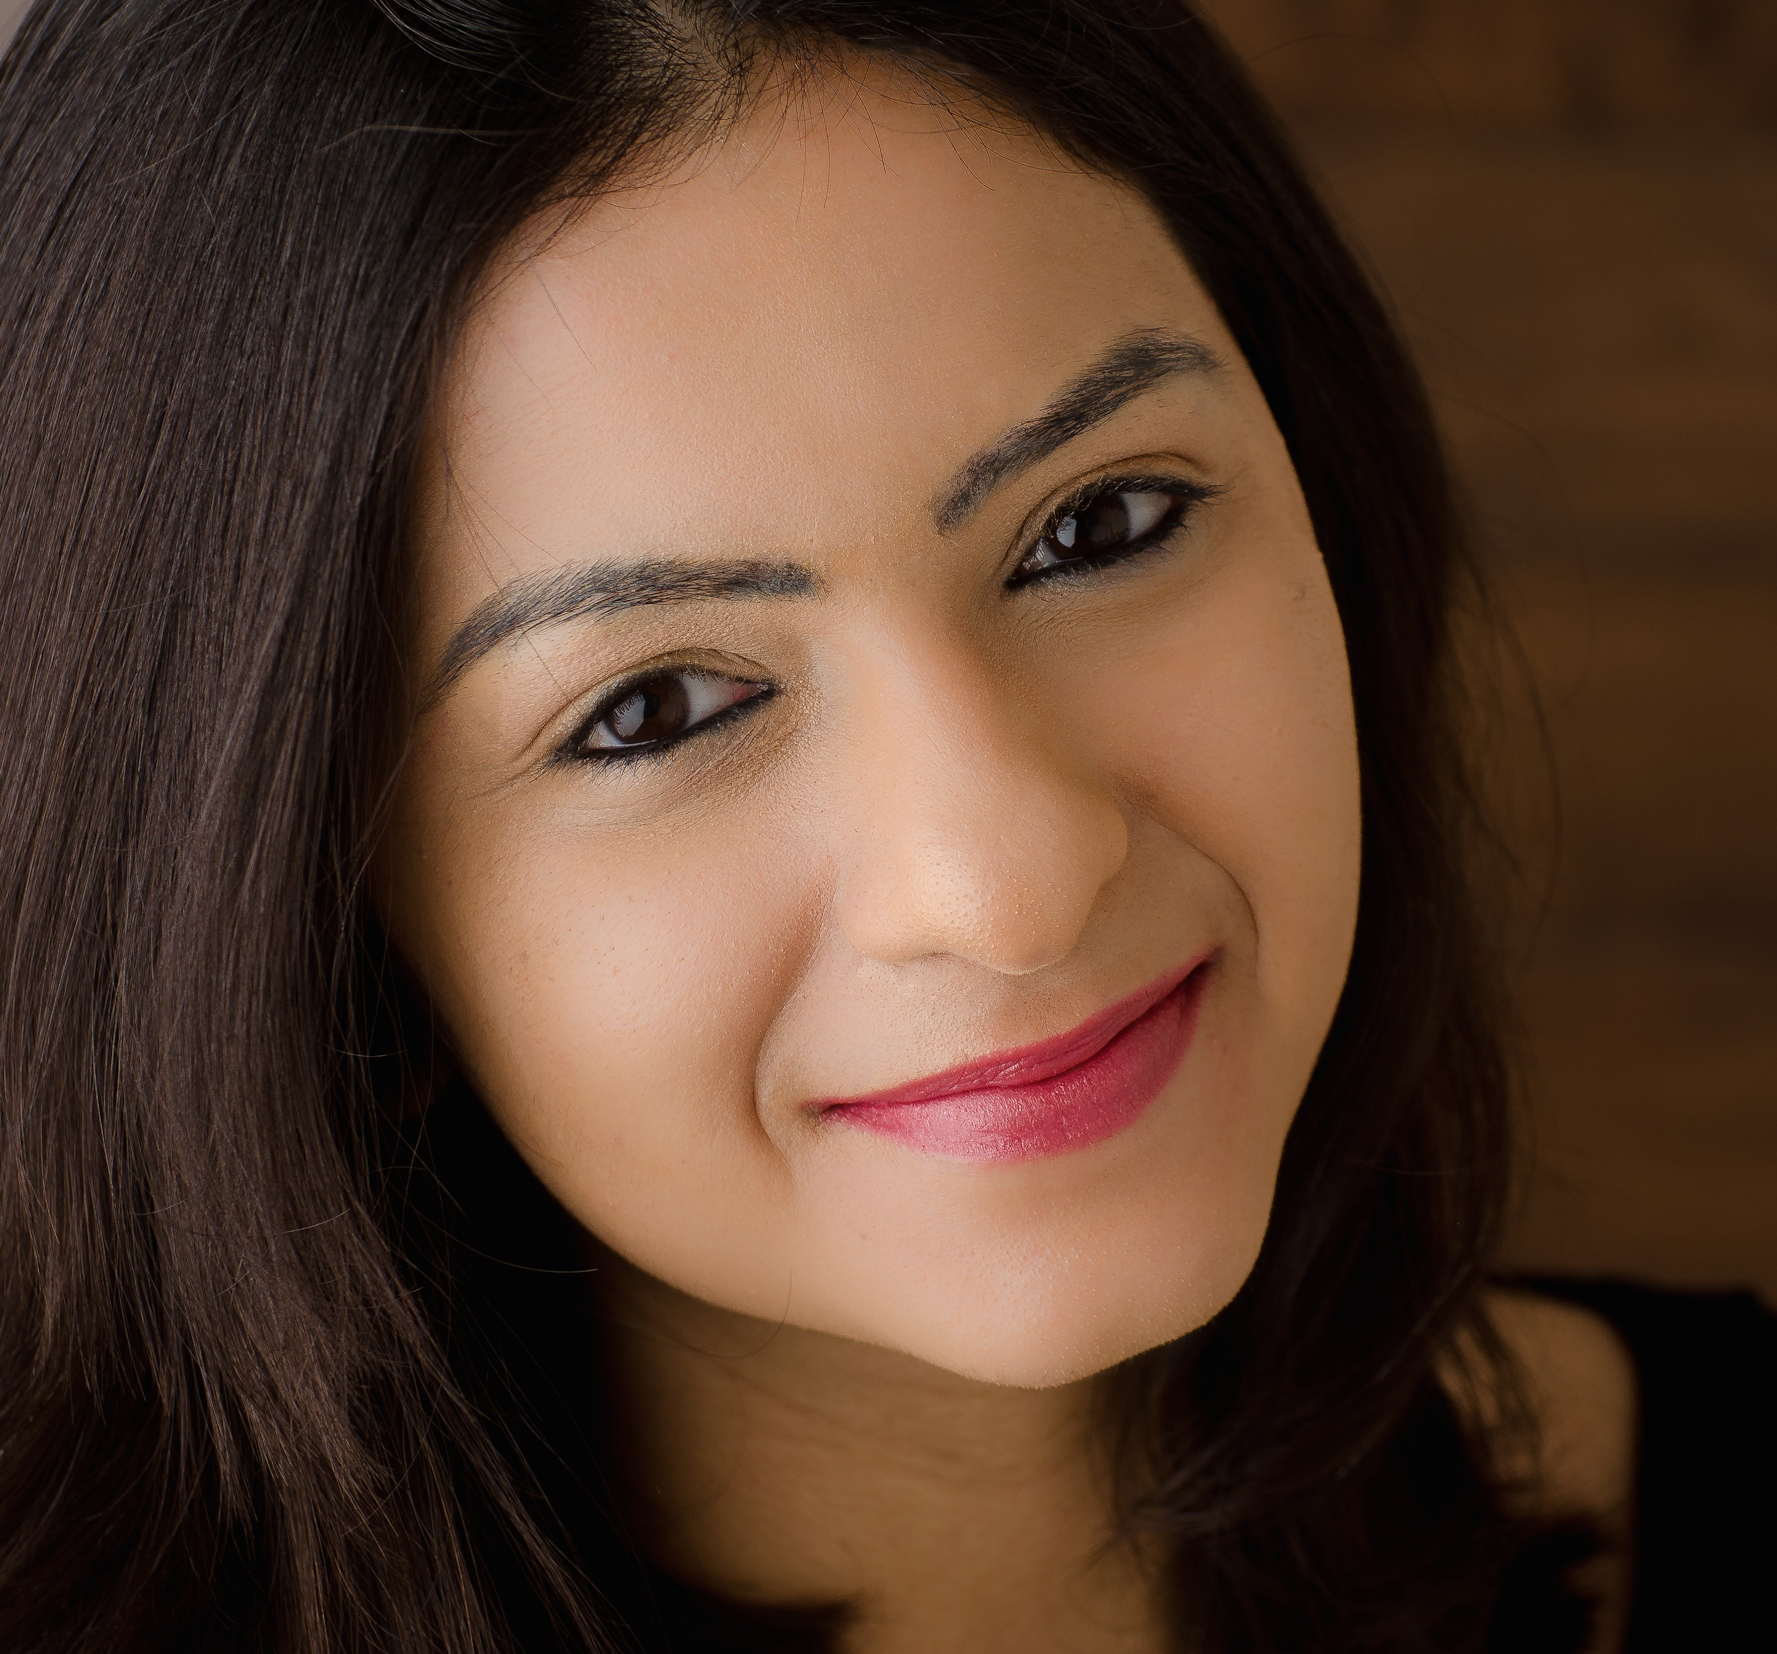 Neha Manaktala, Co-Founder & CEO, DealIndex